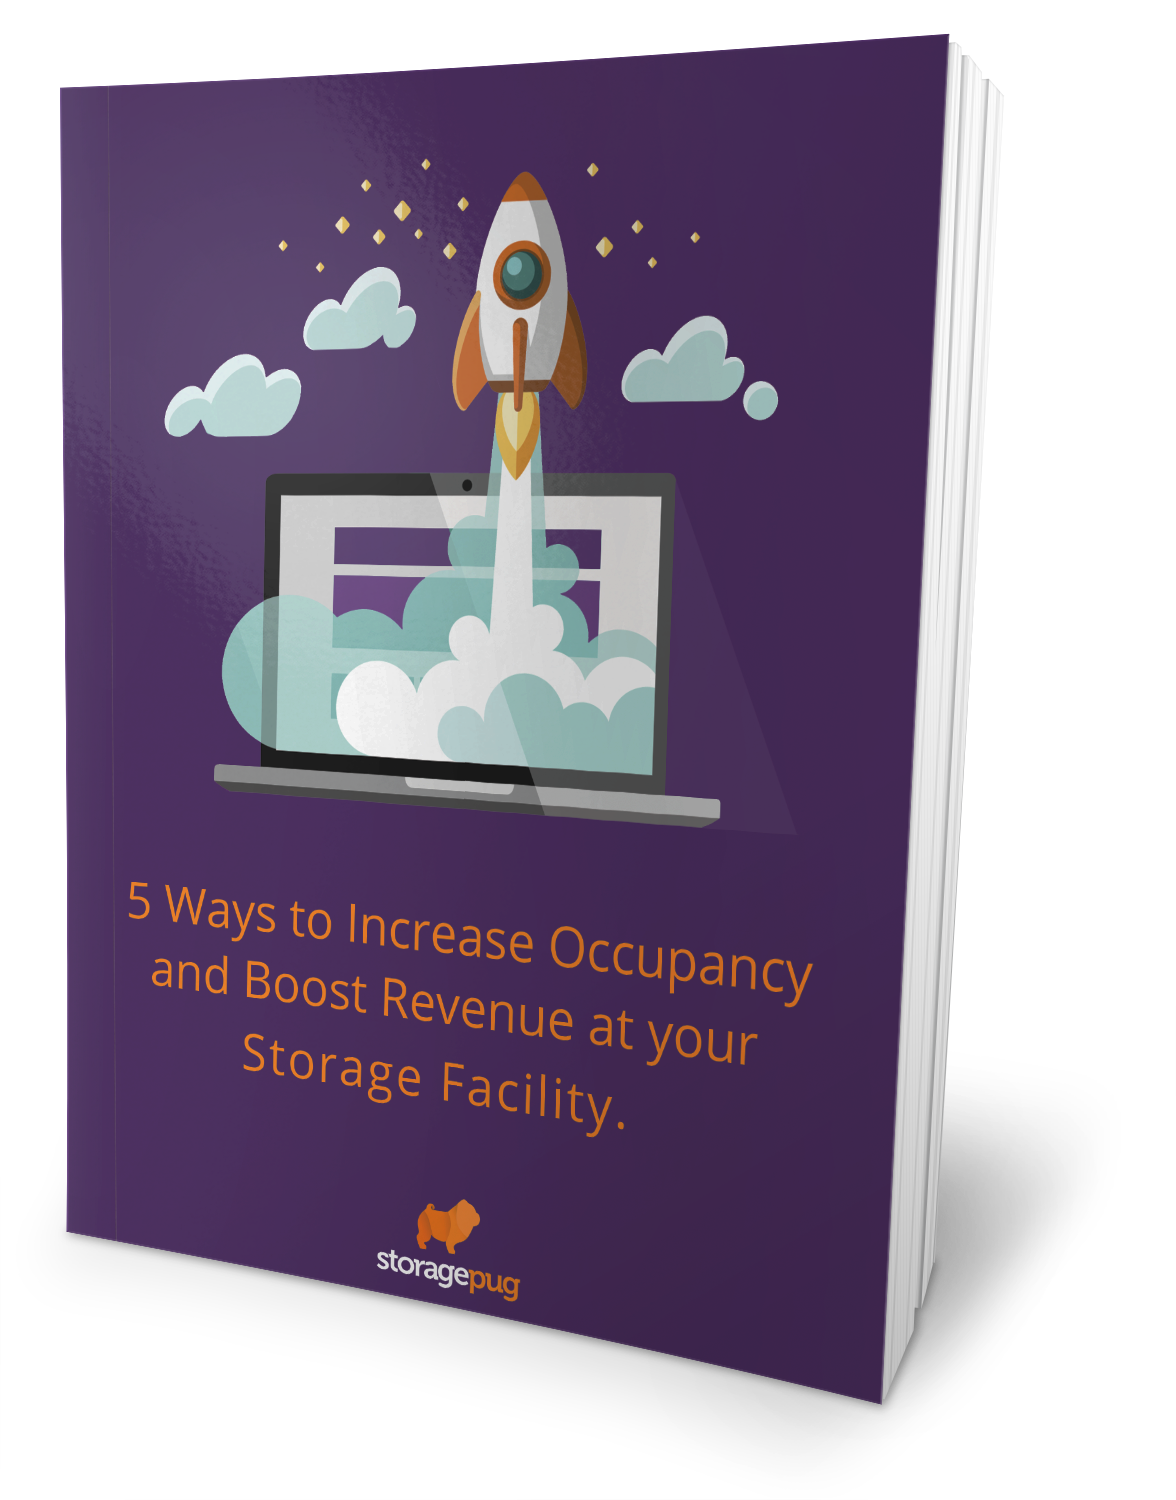 5 Ways to Increase Occupancy and Boost Revenue at your Storage Facility.